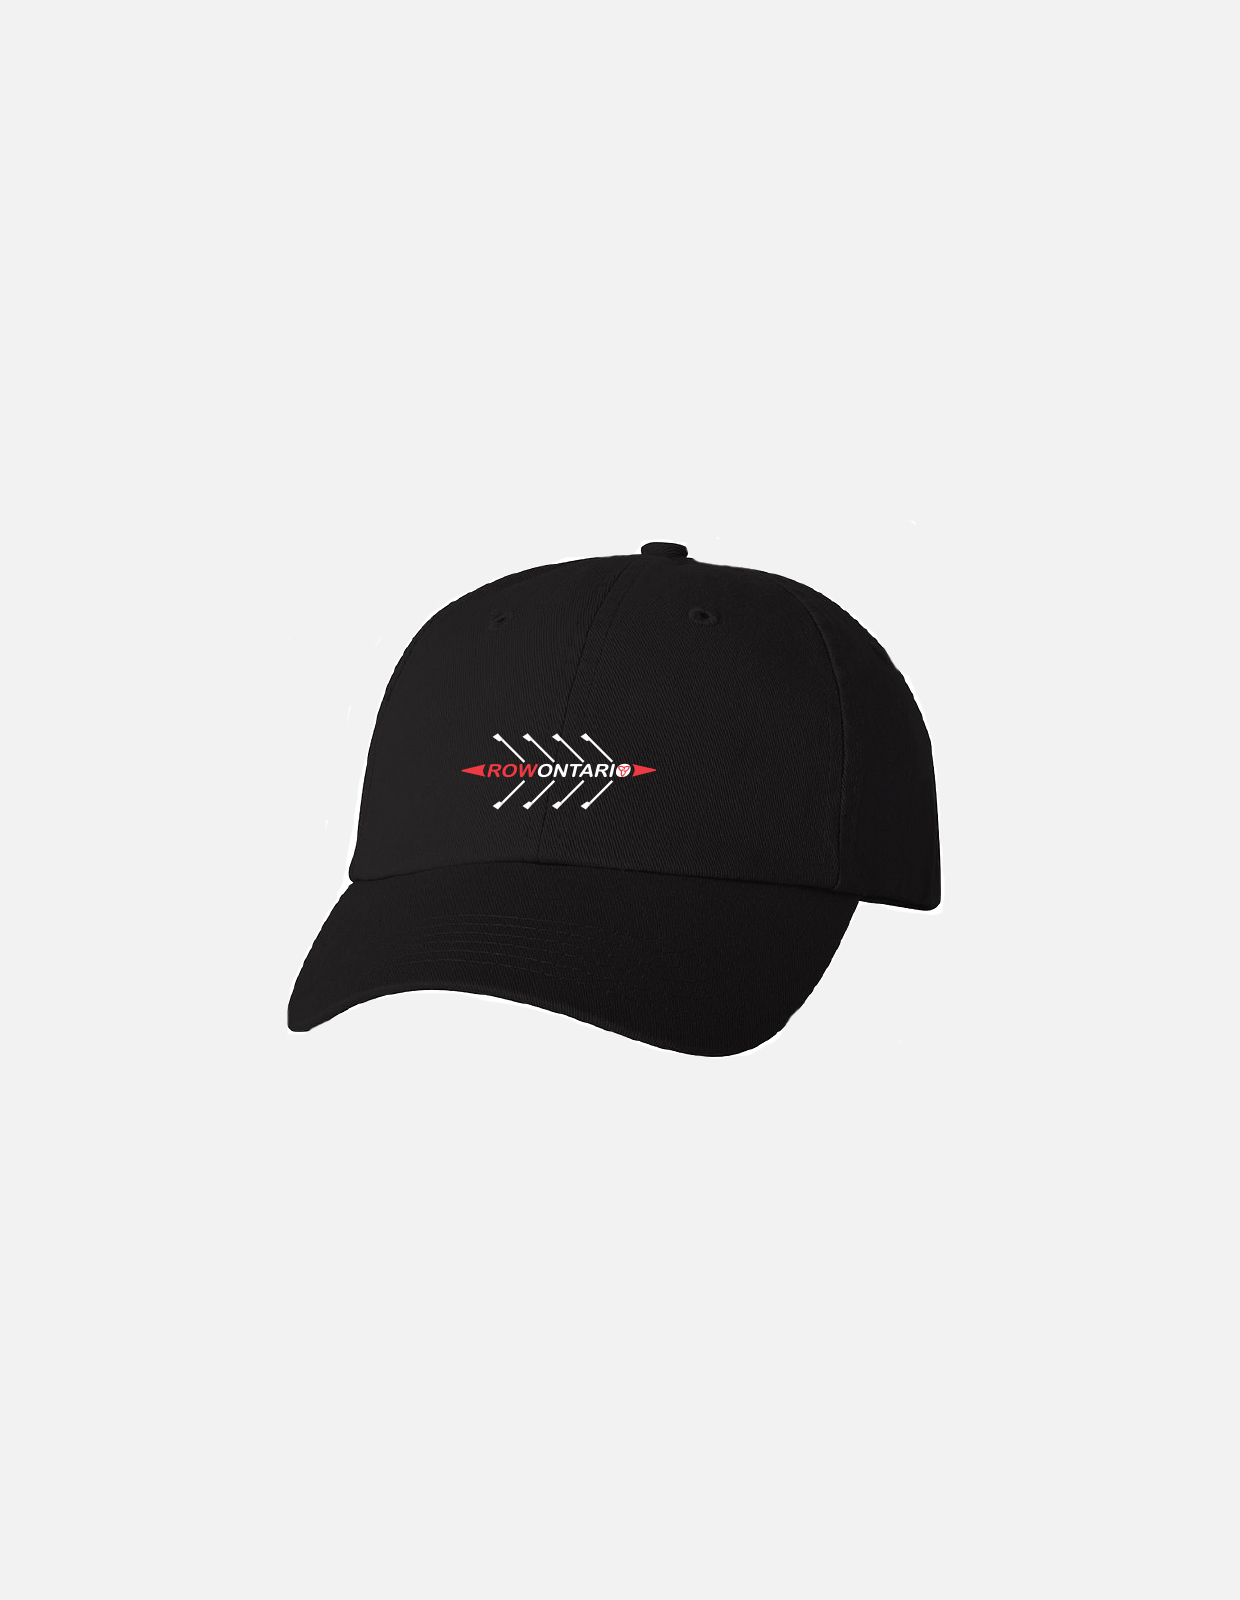 Cotton hat black